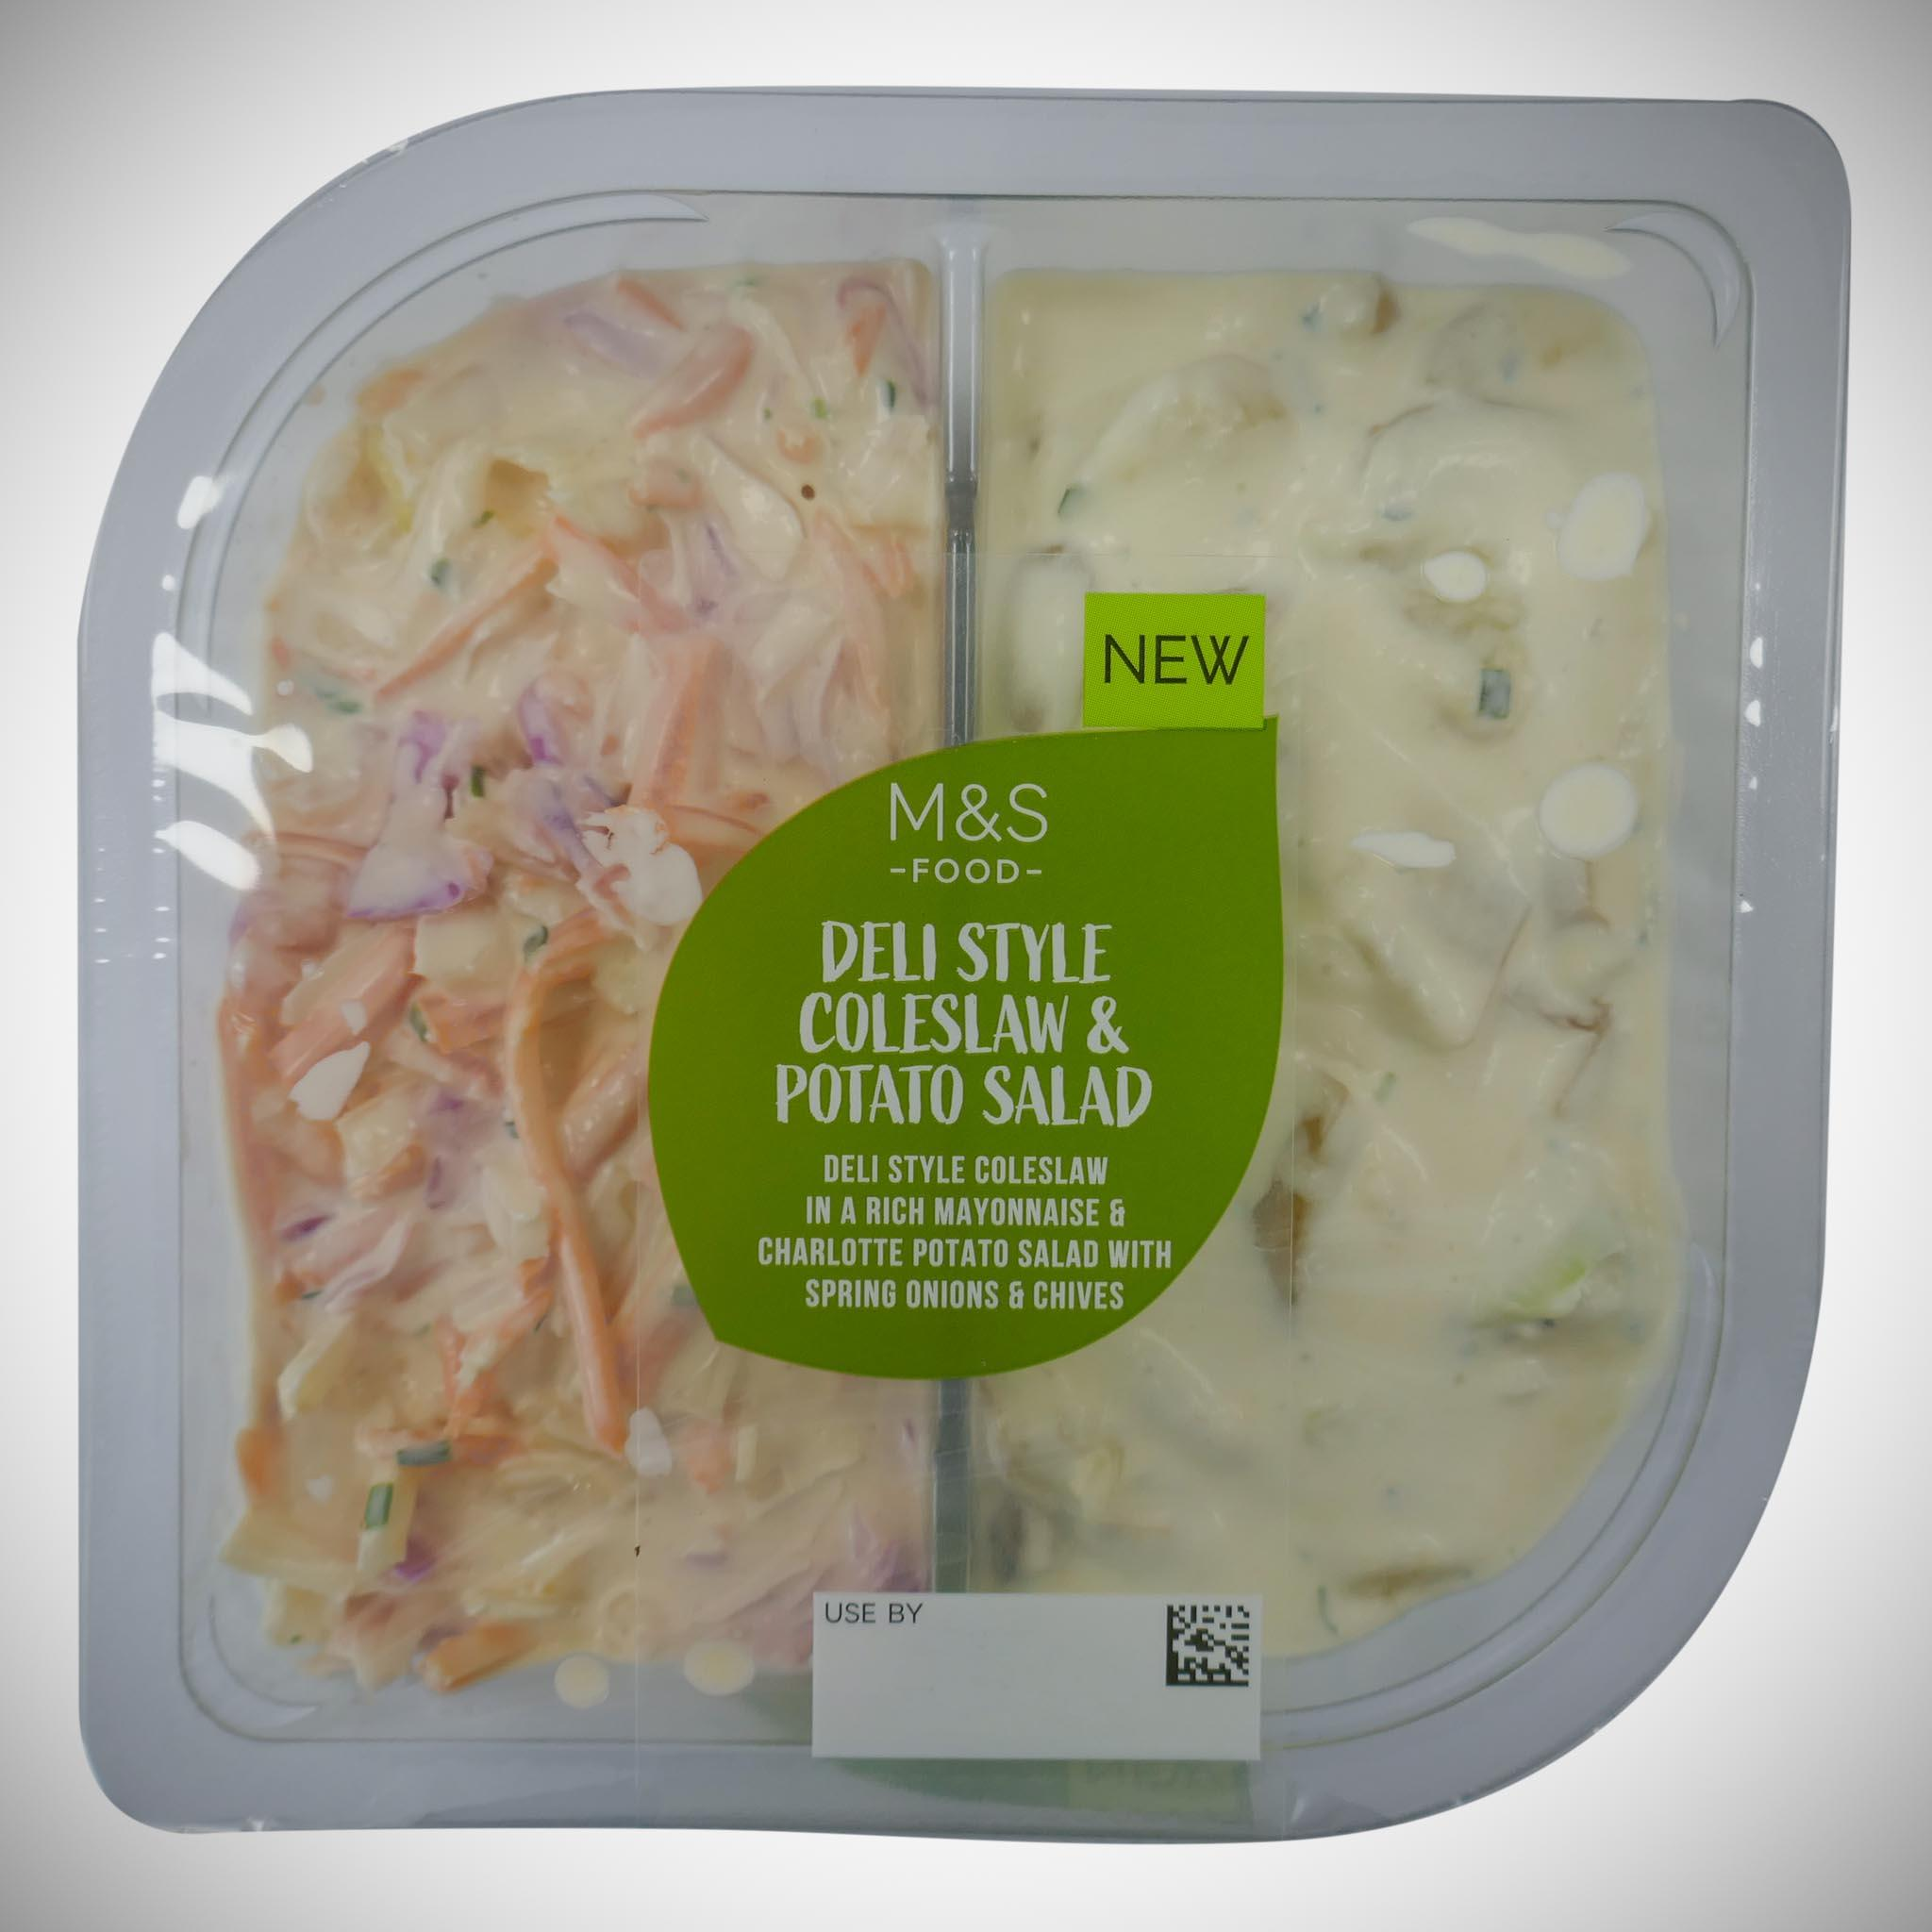 Coleslaw & Potato Salad Duo Pack 500g